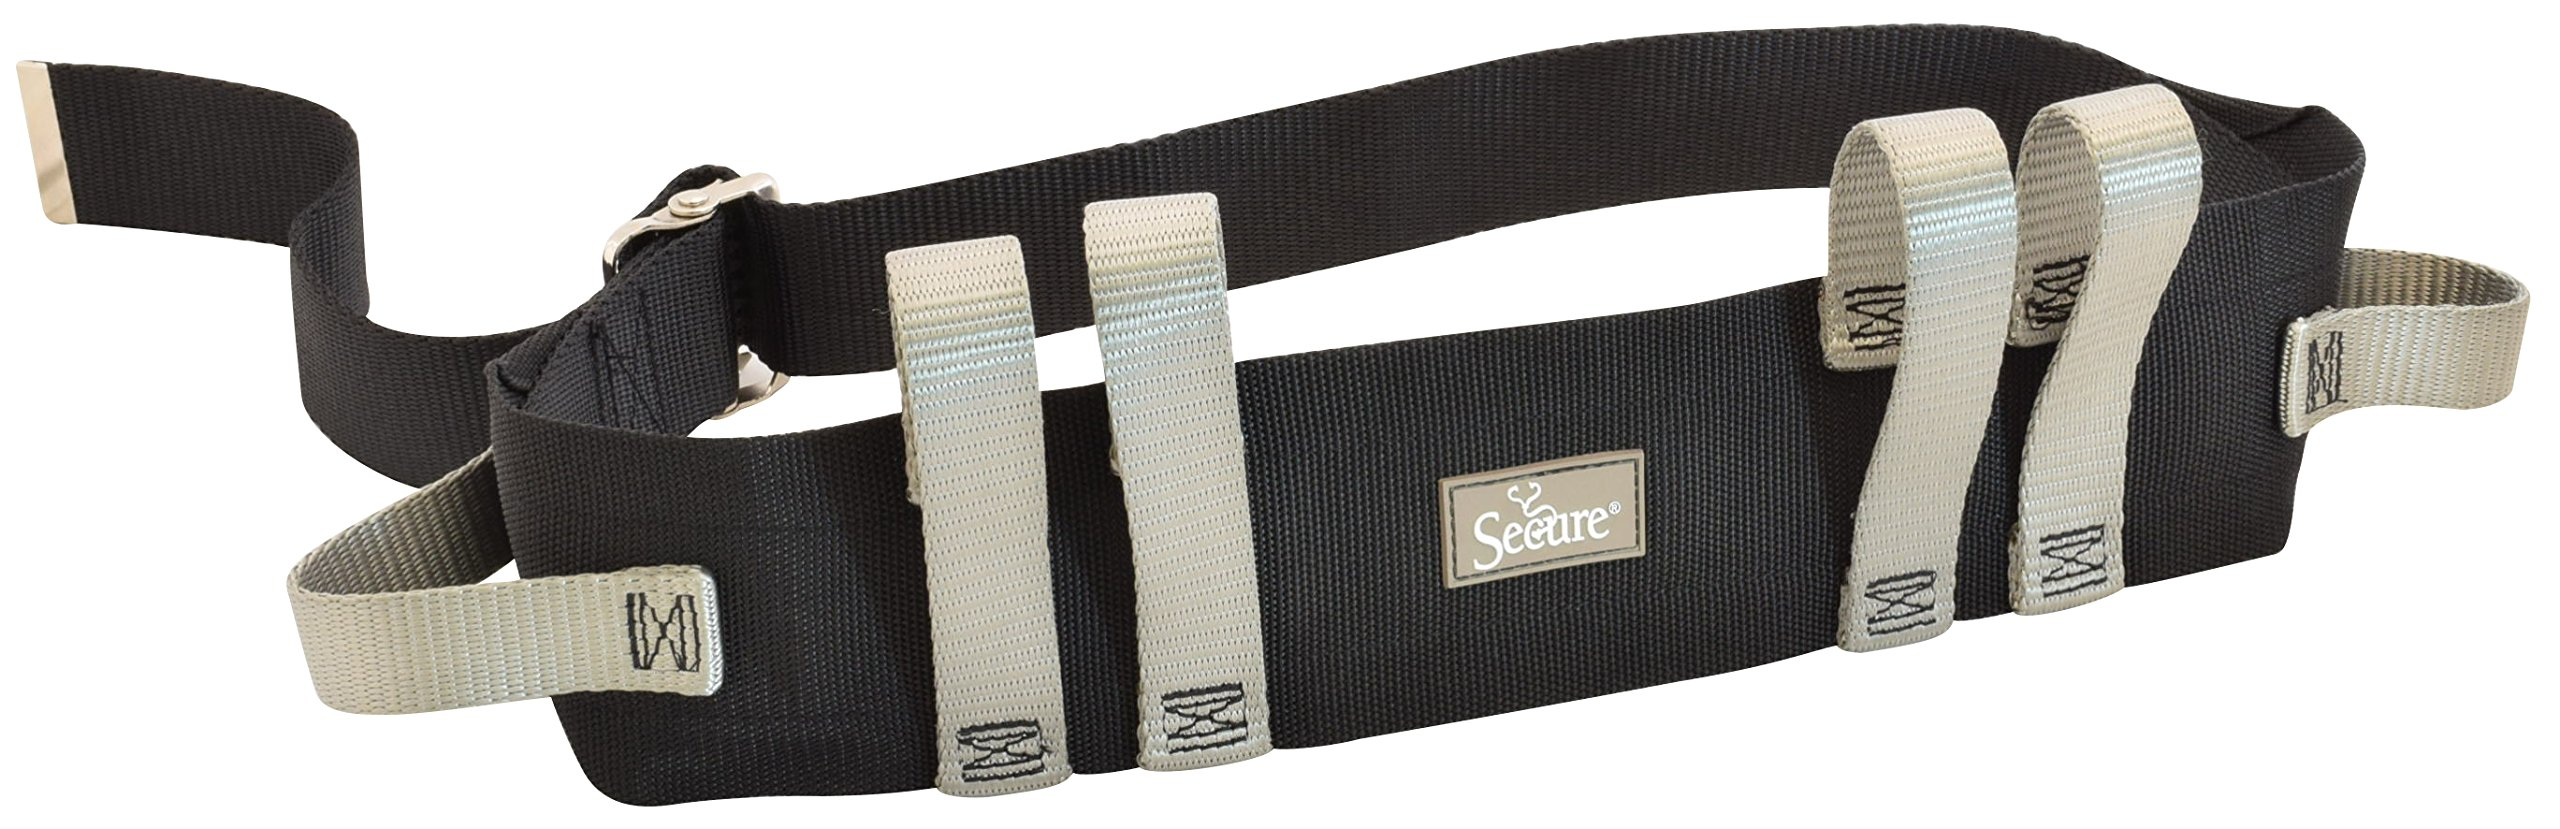 Secure Transfer Gait Belt with 6 Handles and Quick Release Metal Buckle - Medical Nursing Walking Assist Aid for Elderly, Seniors, Therapy (60 inch x 4 inch, Gray Hand Grips (Metal Buckle))